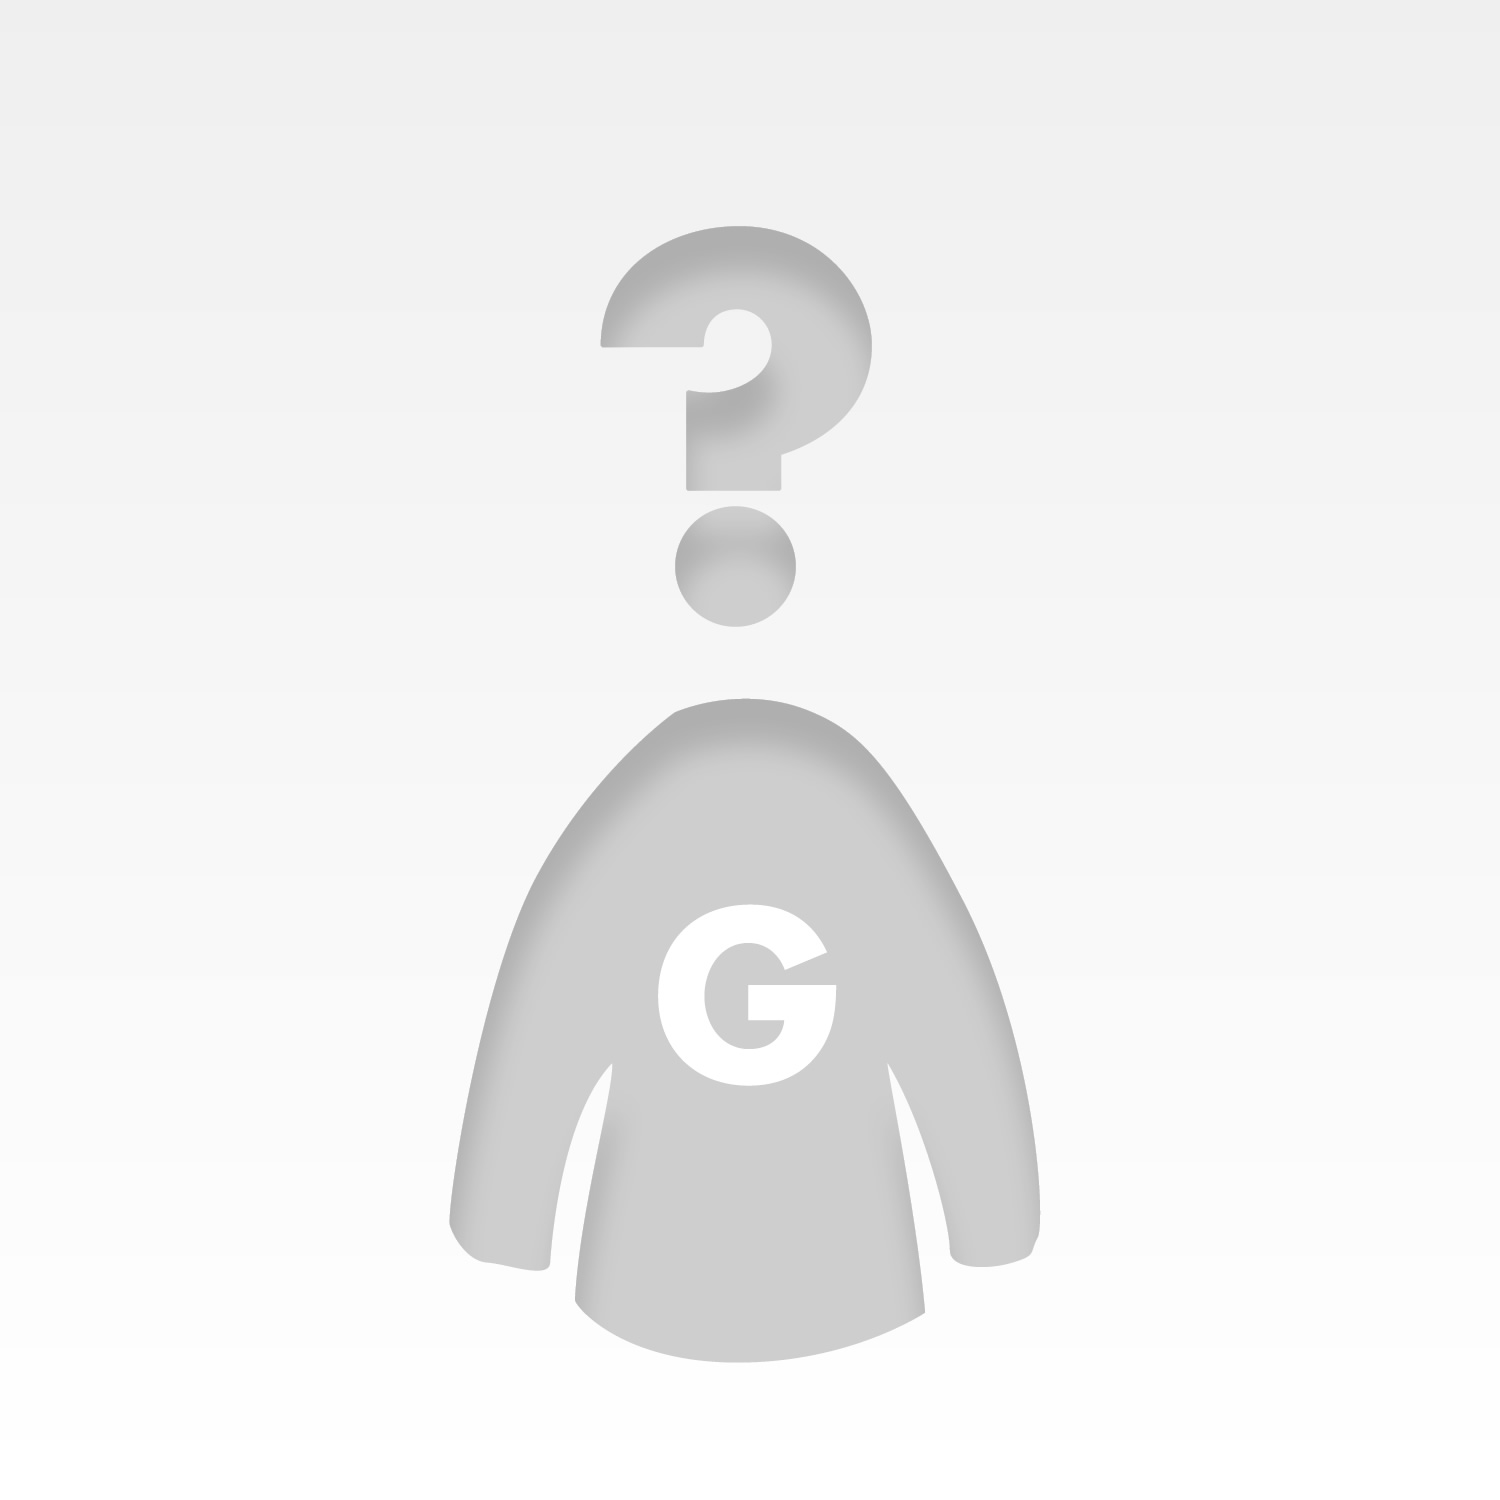 germacdonnell\'s avatar